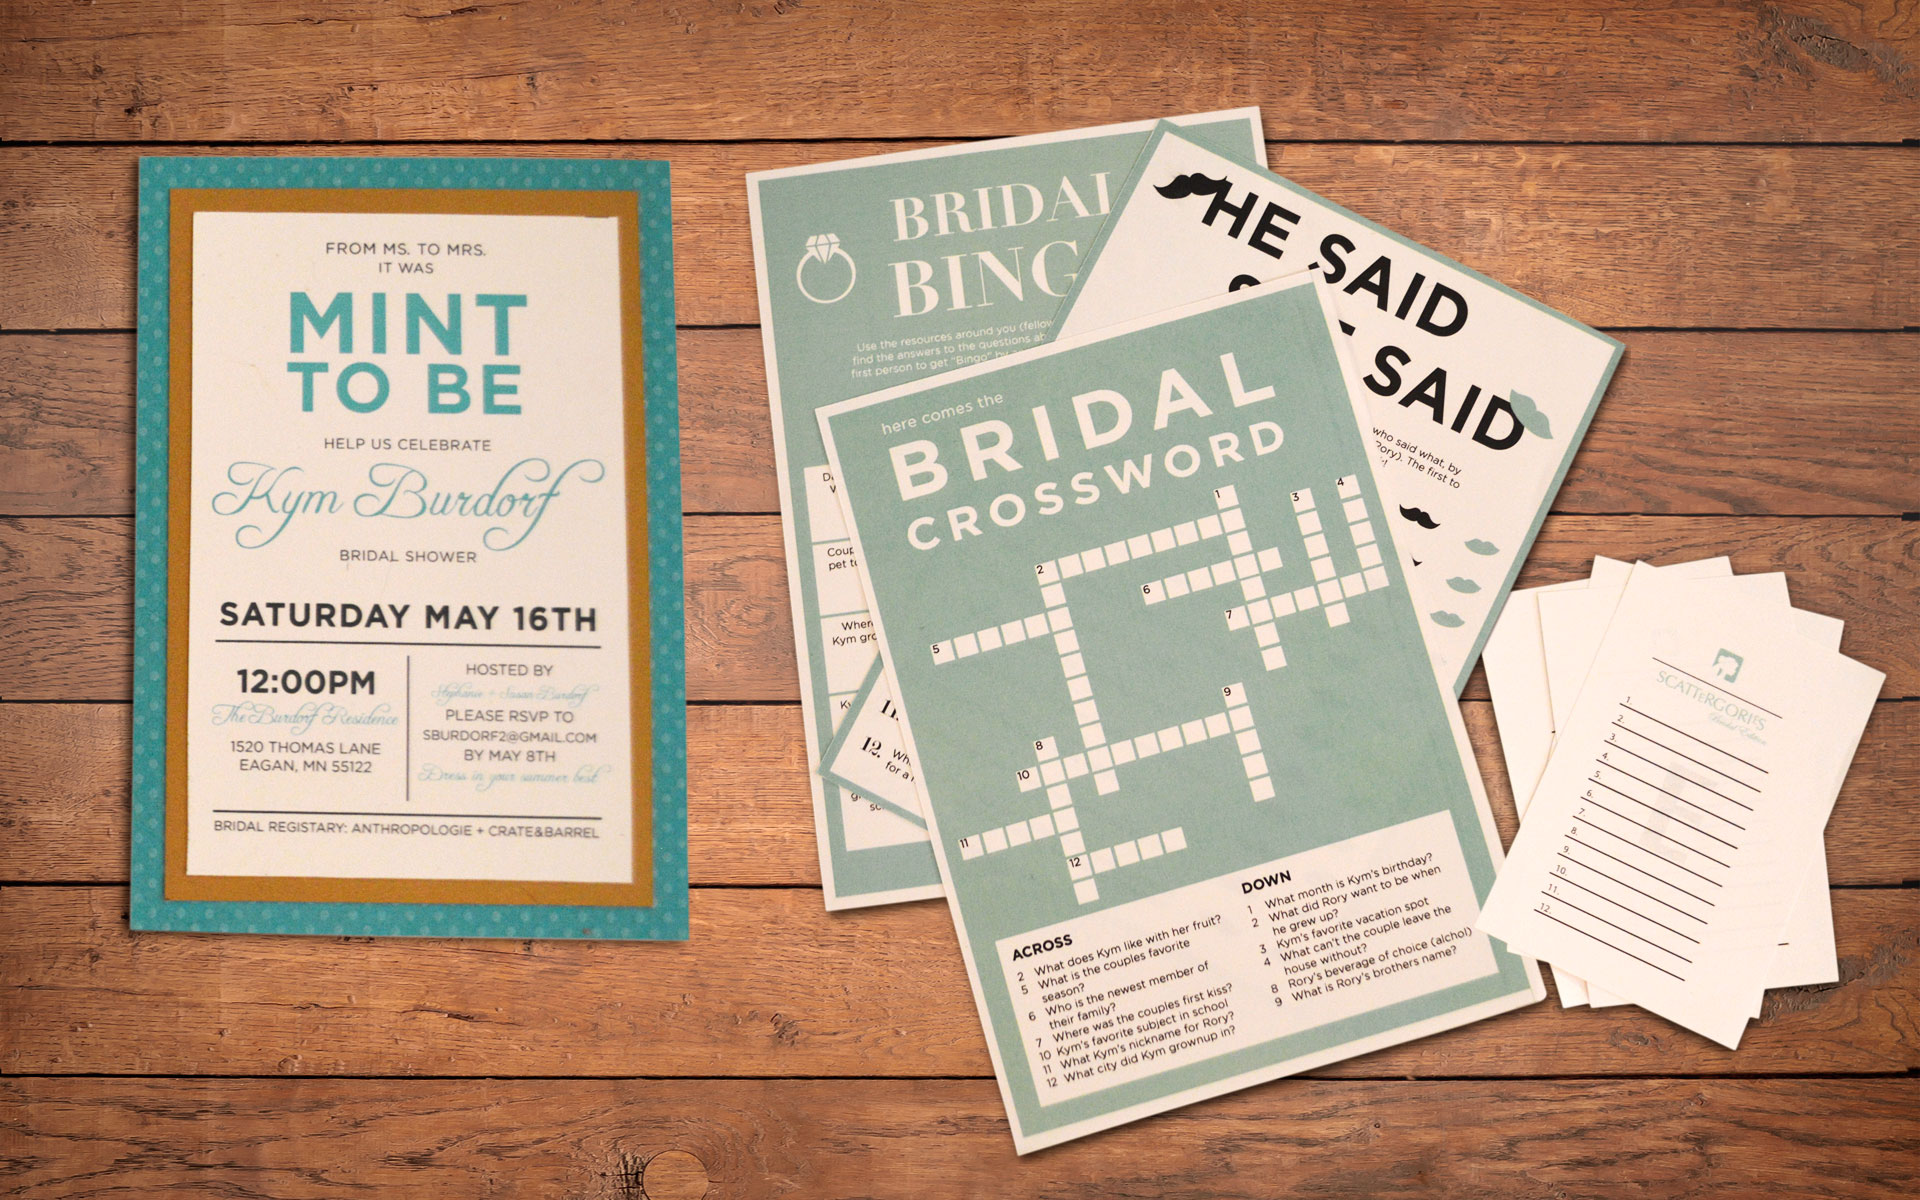 Bridal Shower Invitation And A Selection Of Printed Entertainment Pieces